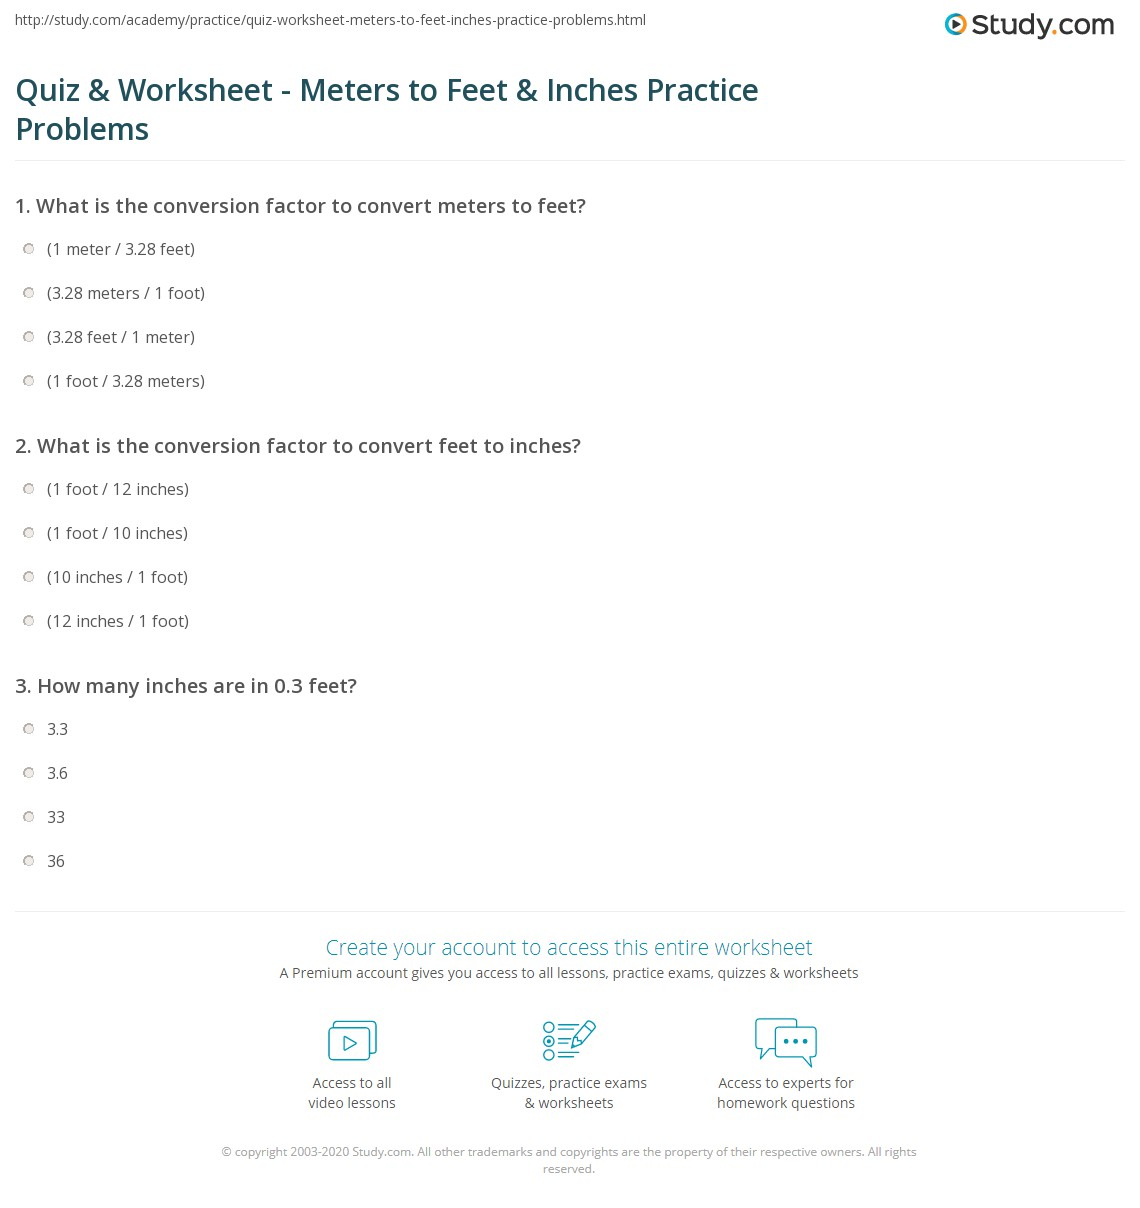 Free Worksheet Feet To Inches Worksheet quiz worksheet meters to feet inches practice problems print 1 62 in how steps worksheet